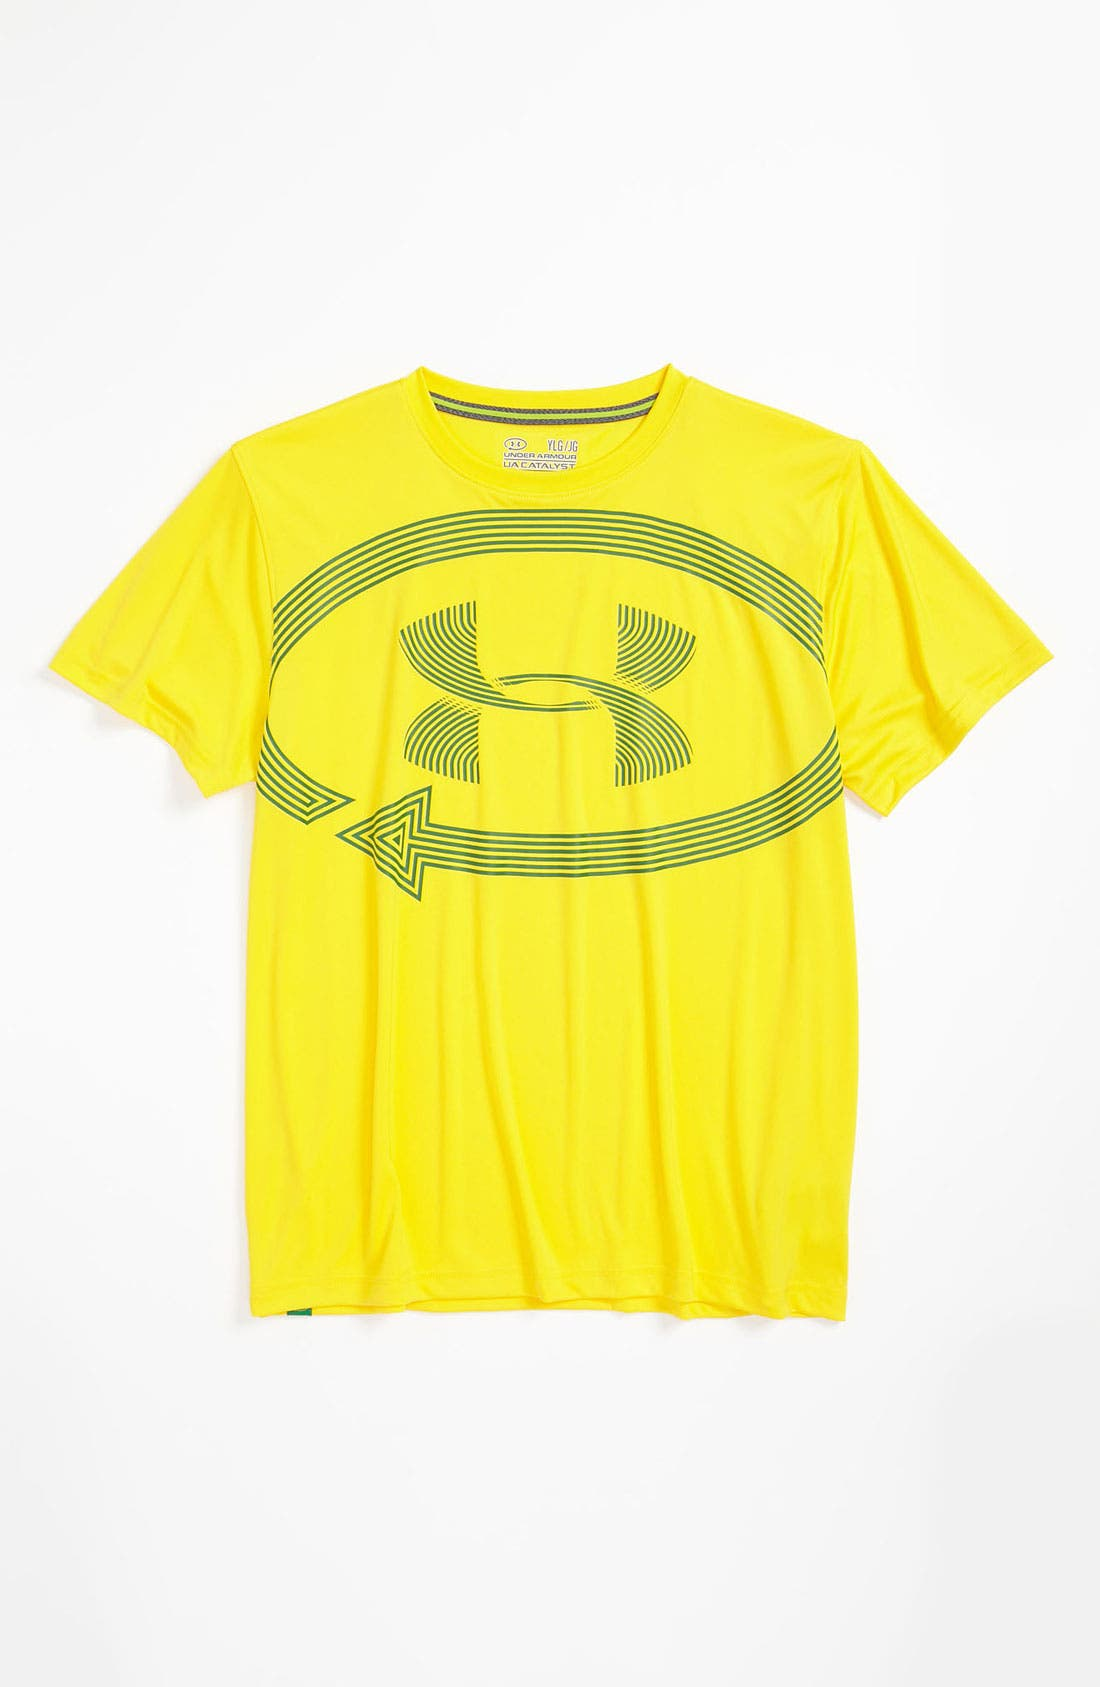 Alternate Image 1 Selected - Under Armour 'Catalyst' T-Shirt (Big Boys)